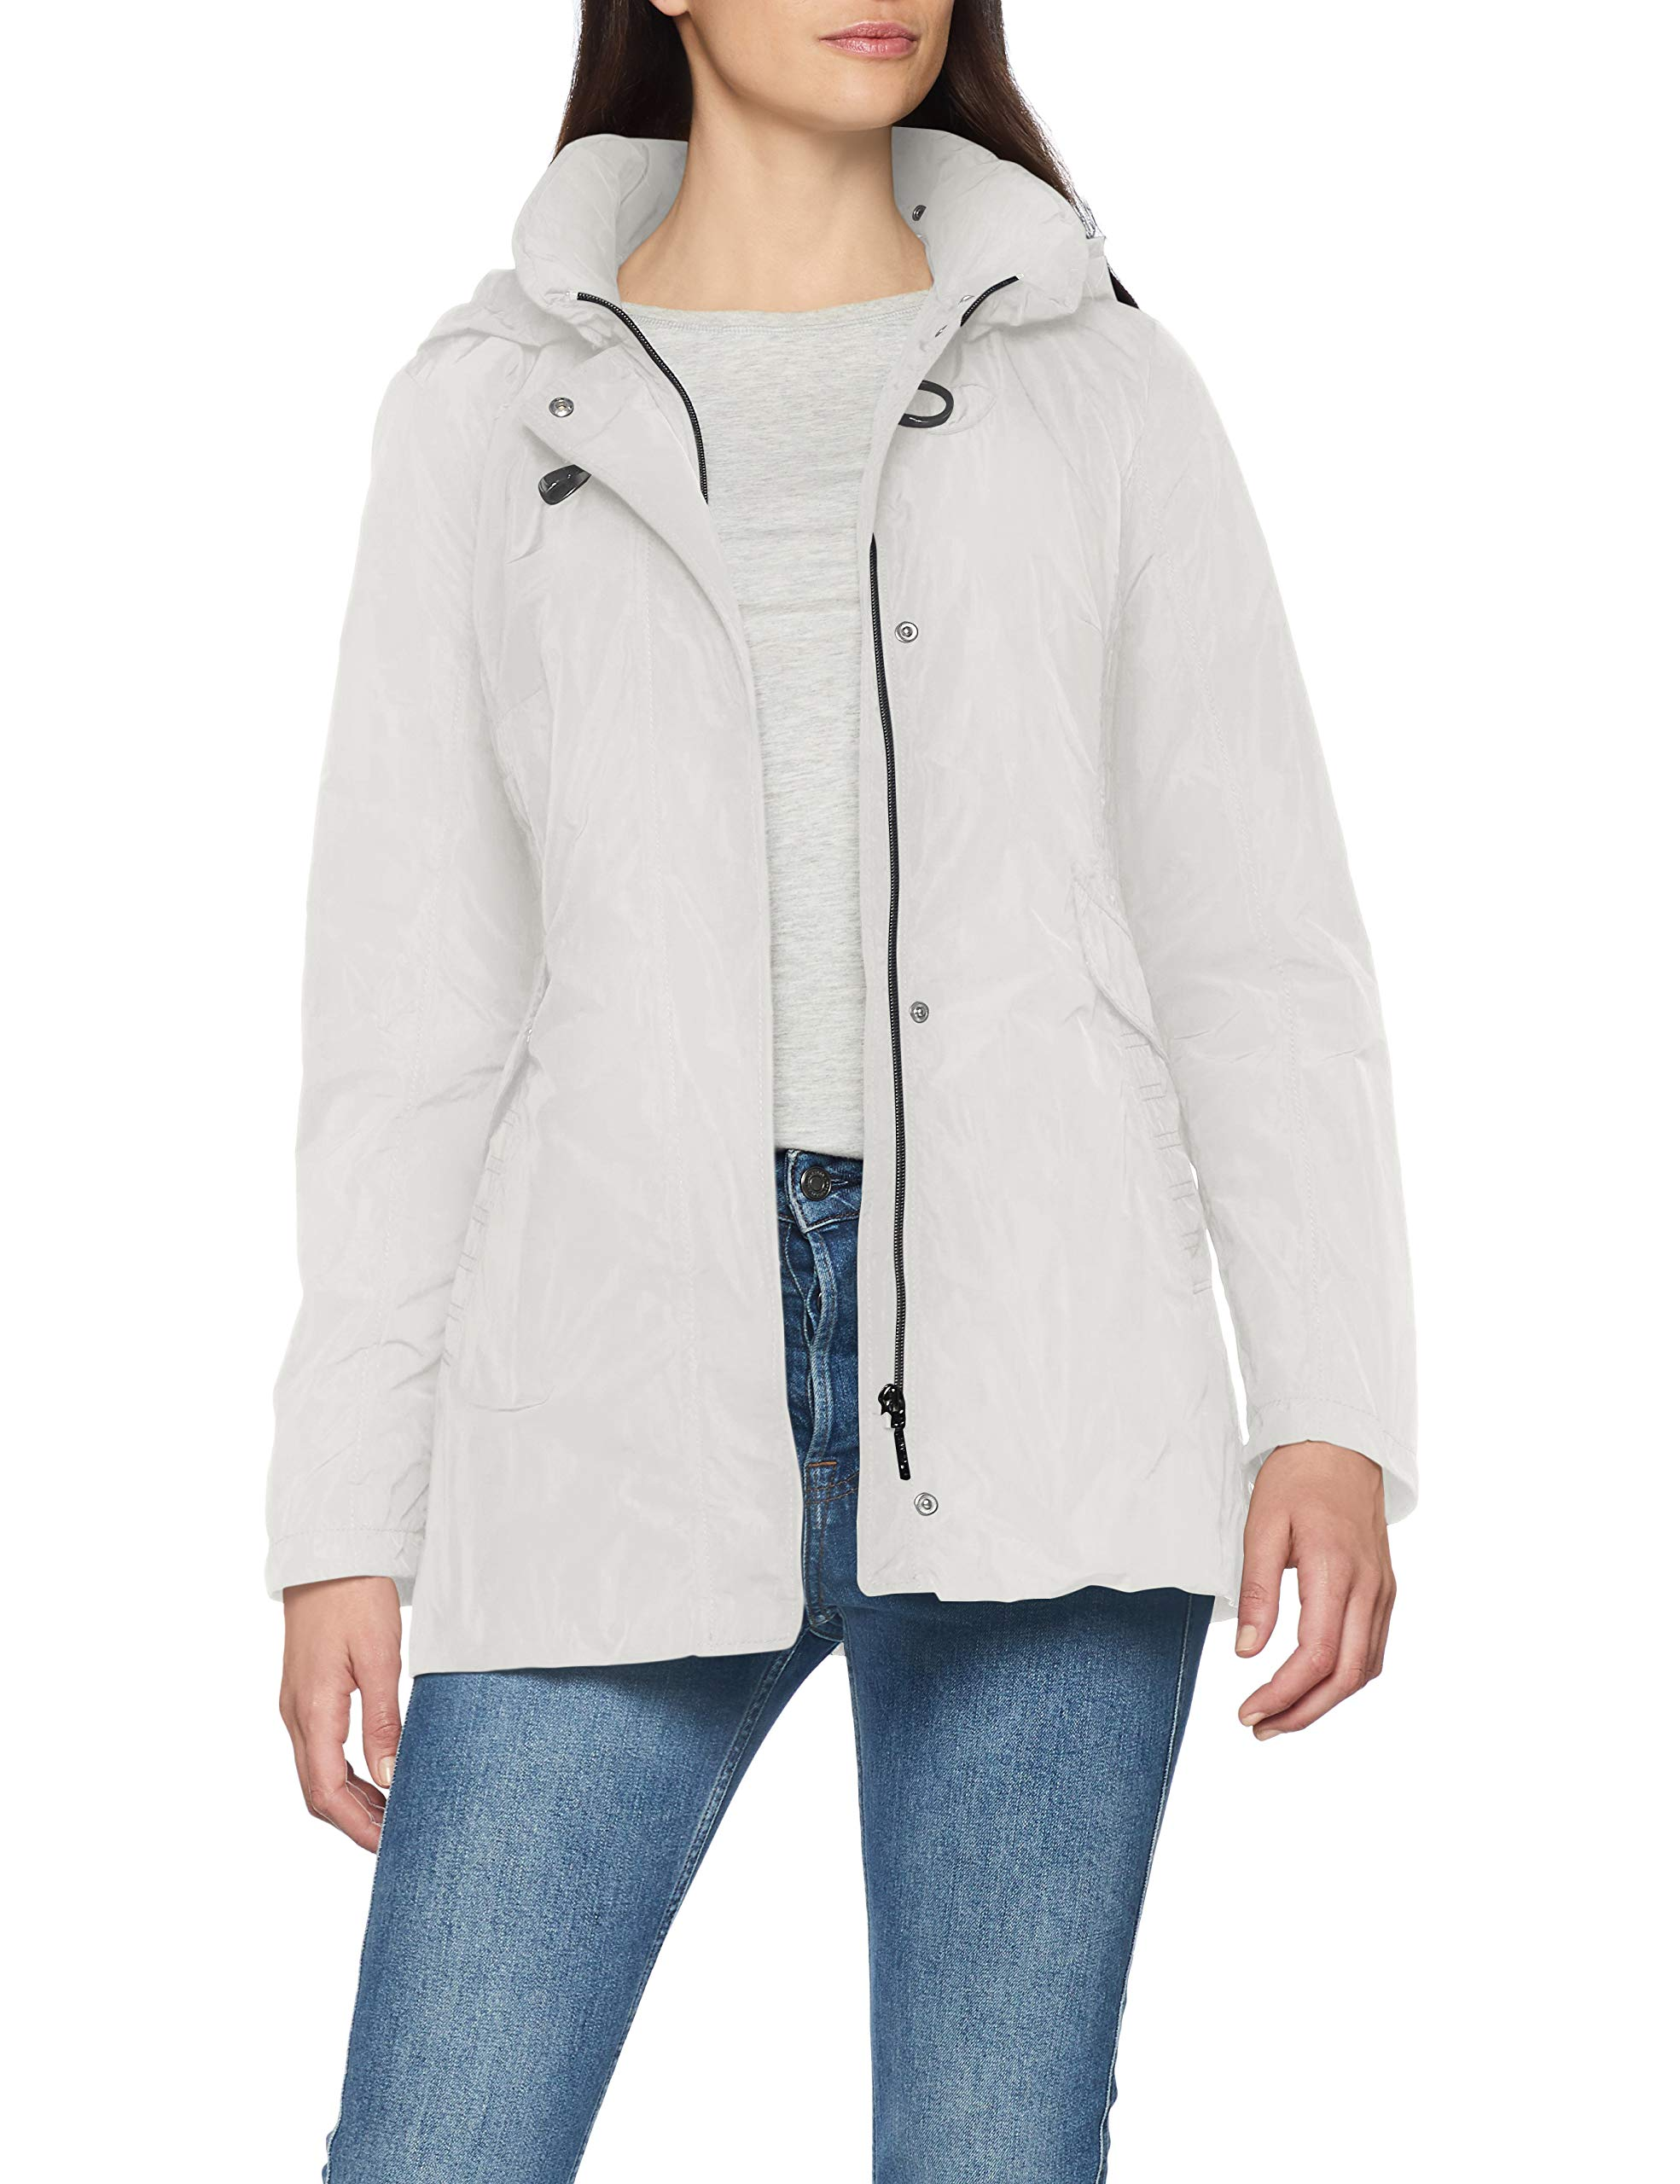 Bret Fabricant42Femme 9010 5261 Gil 922644taille BlousonGrisdawn Blue 80wknOP